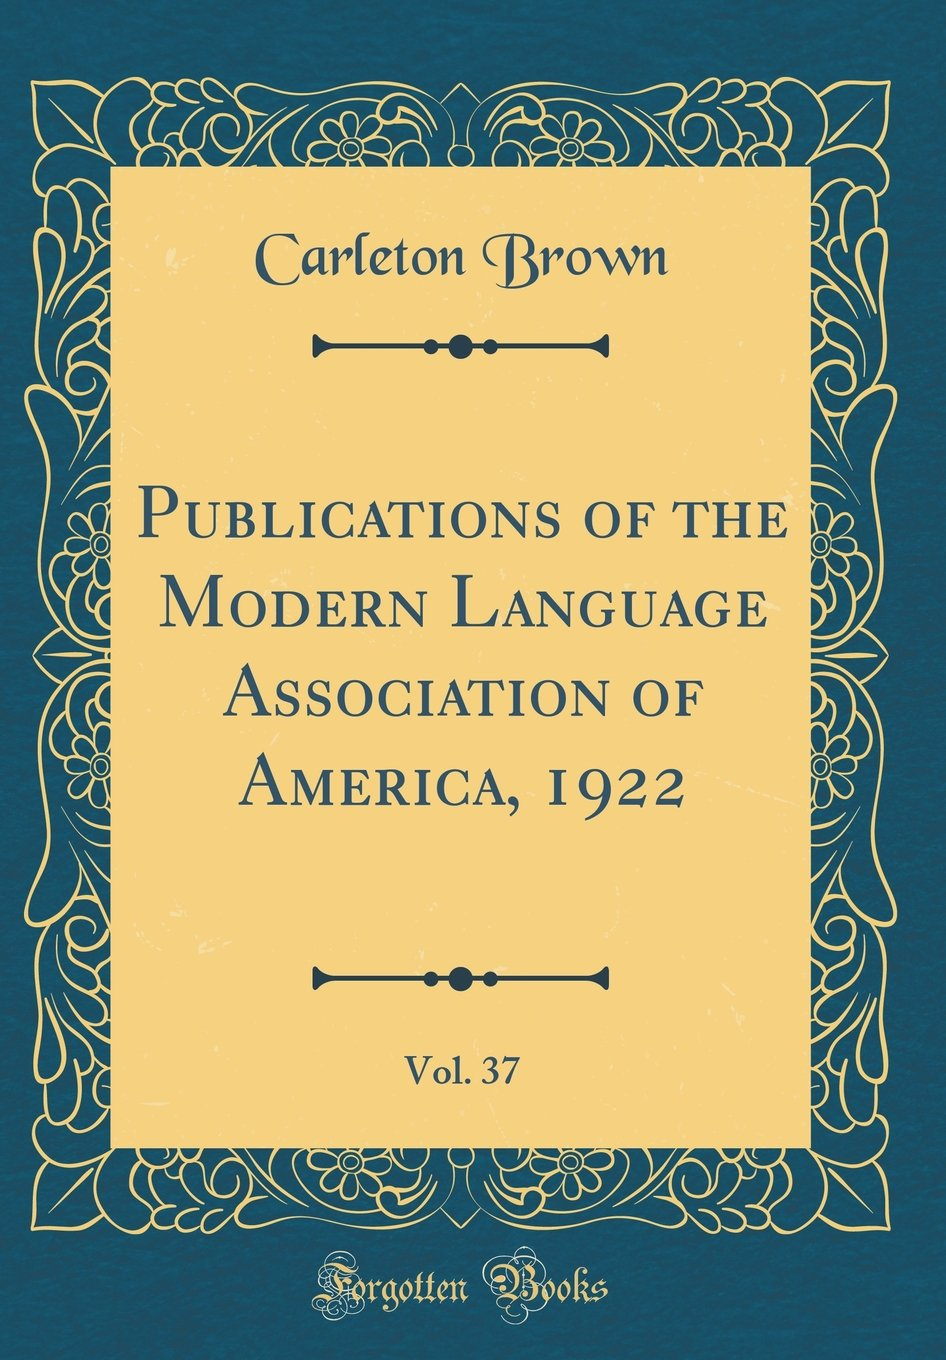 Publications of the Modern Language Association of America, 1922, Vol. 37 (Classic Reprint) PDF